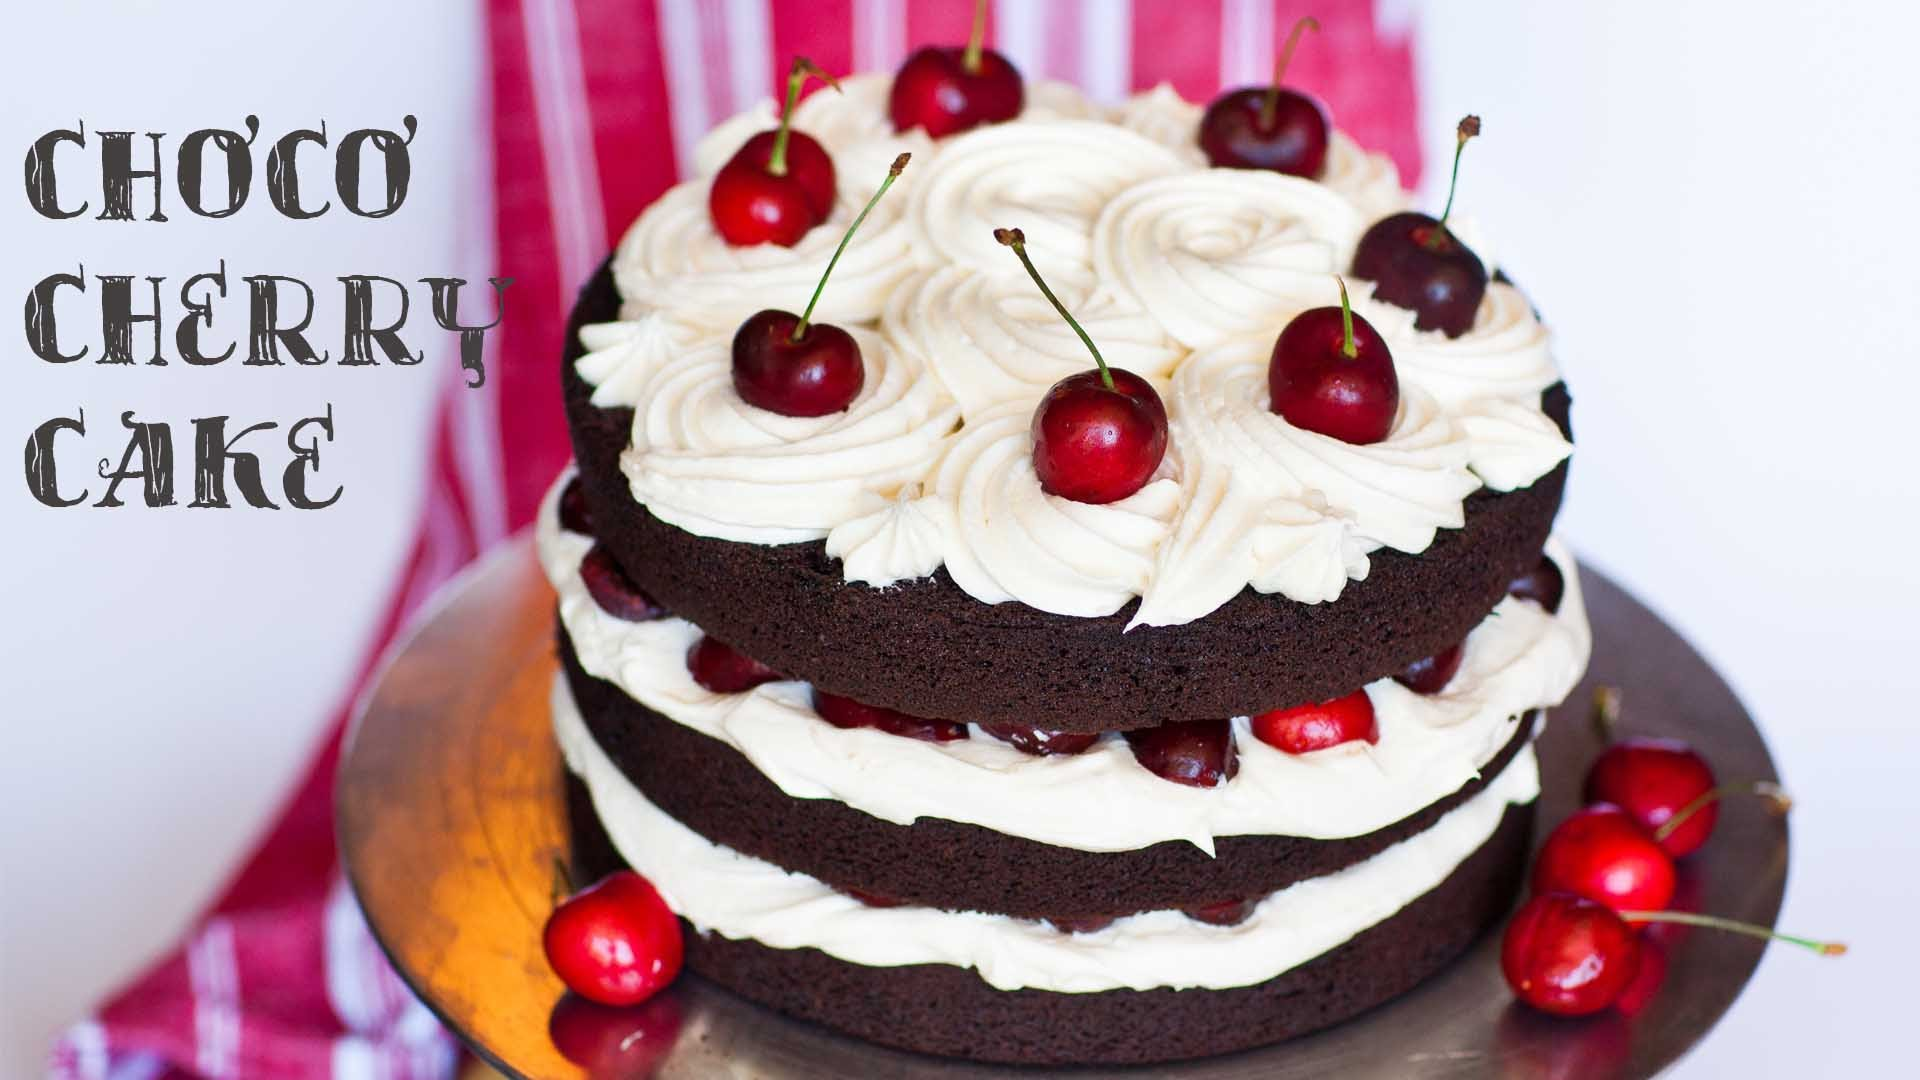 A Chocolate Cherry Cake With An Amazing Frosting